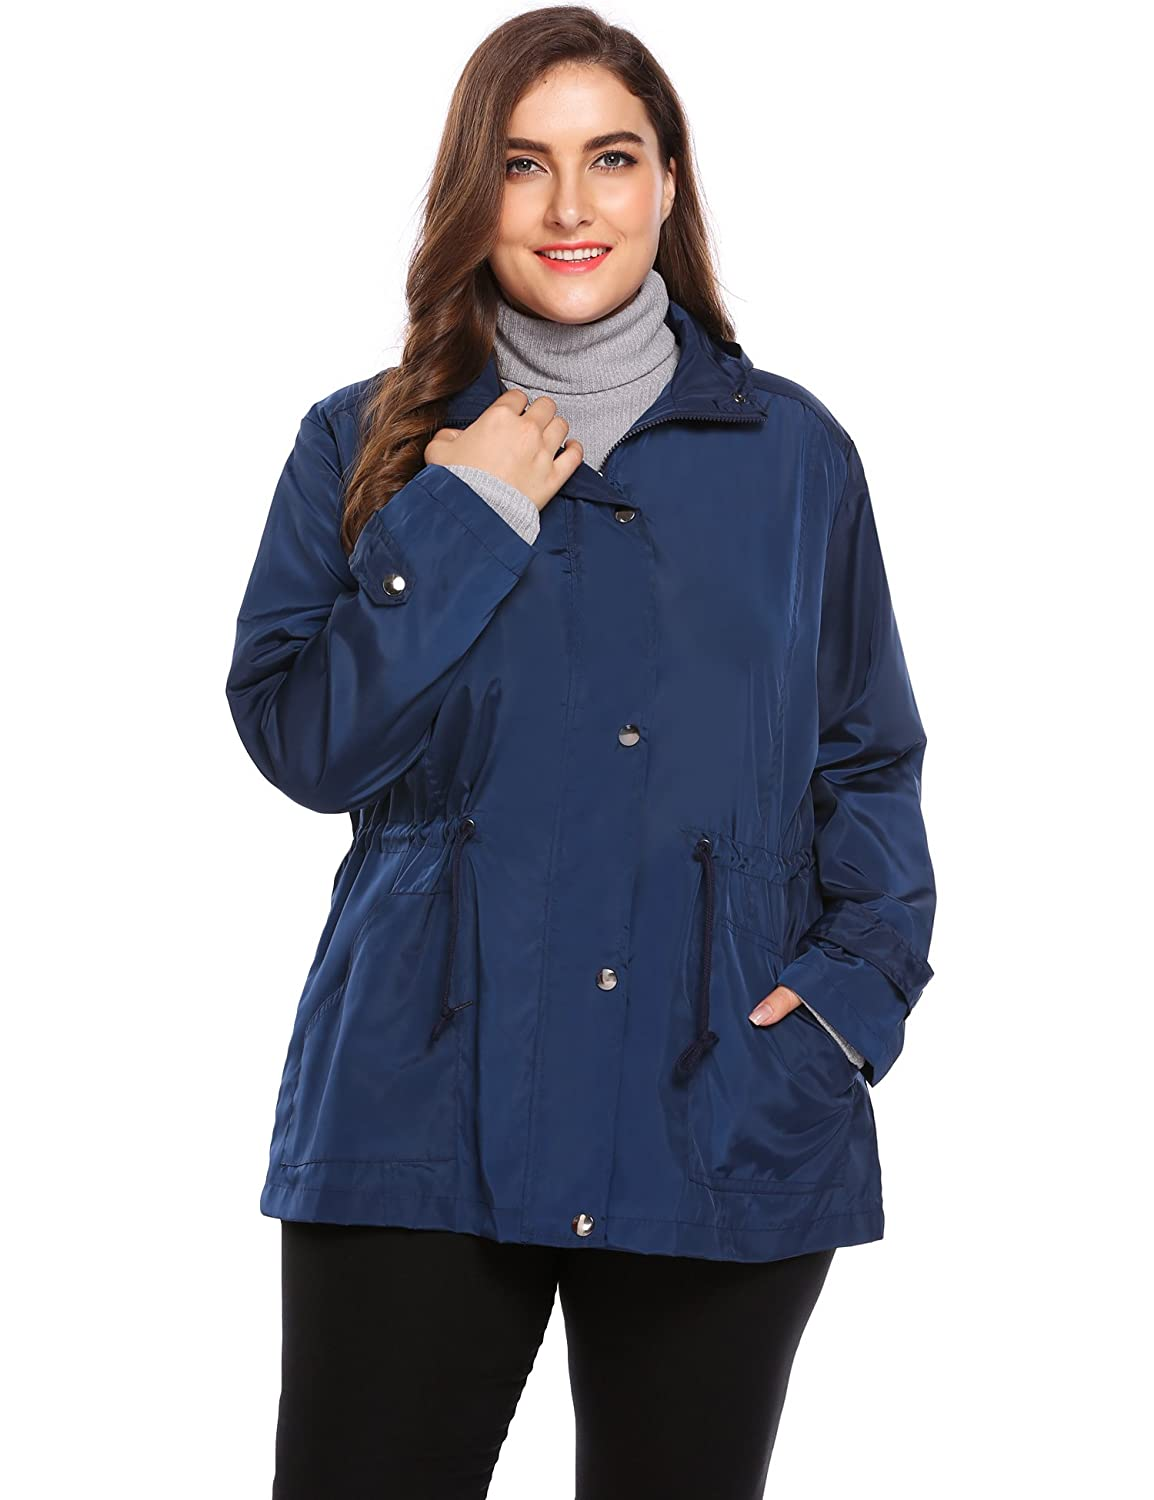 9942df86f58 Top 10 wholesale Waterproof Womens Rain Anorak Jacket - Chinabrands.com